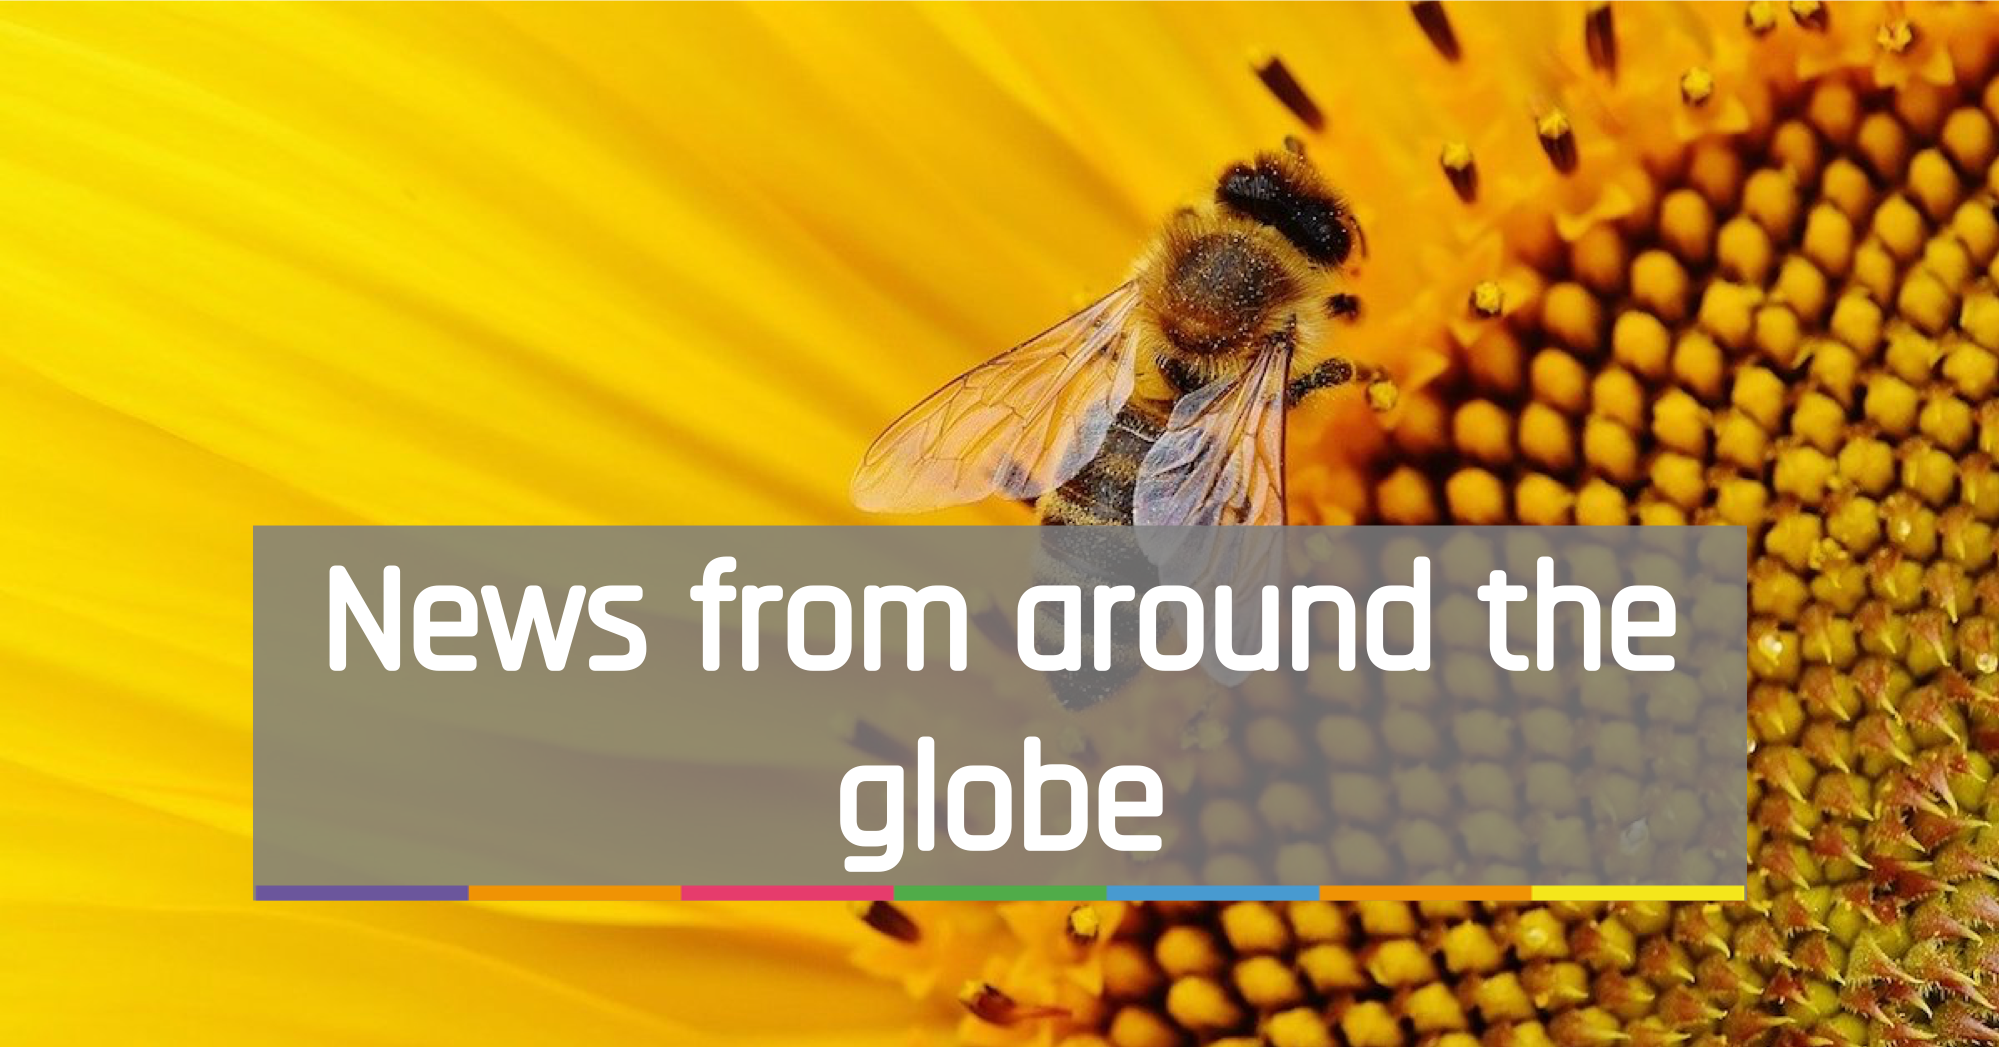 News from around the globe